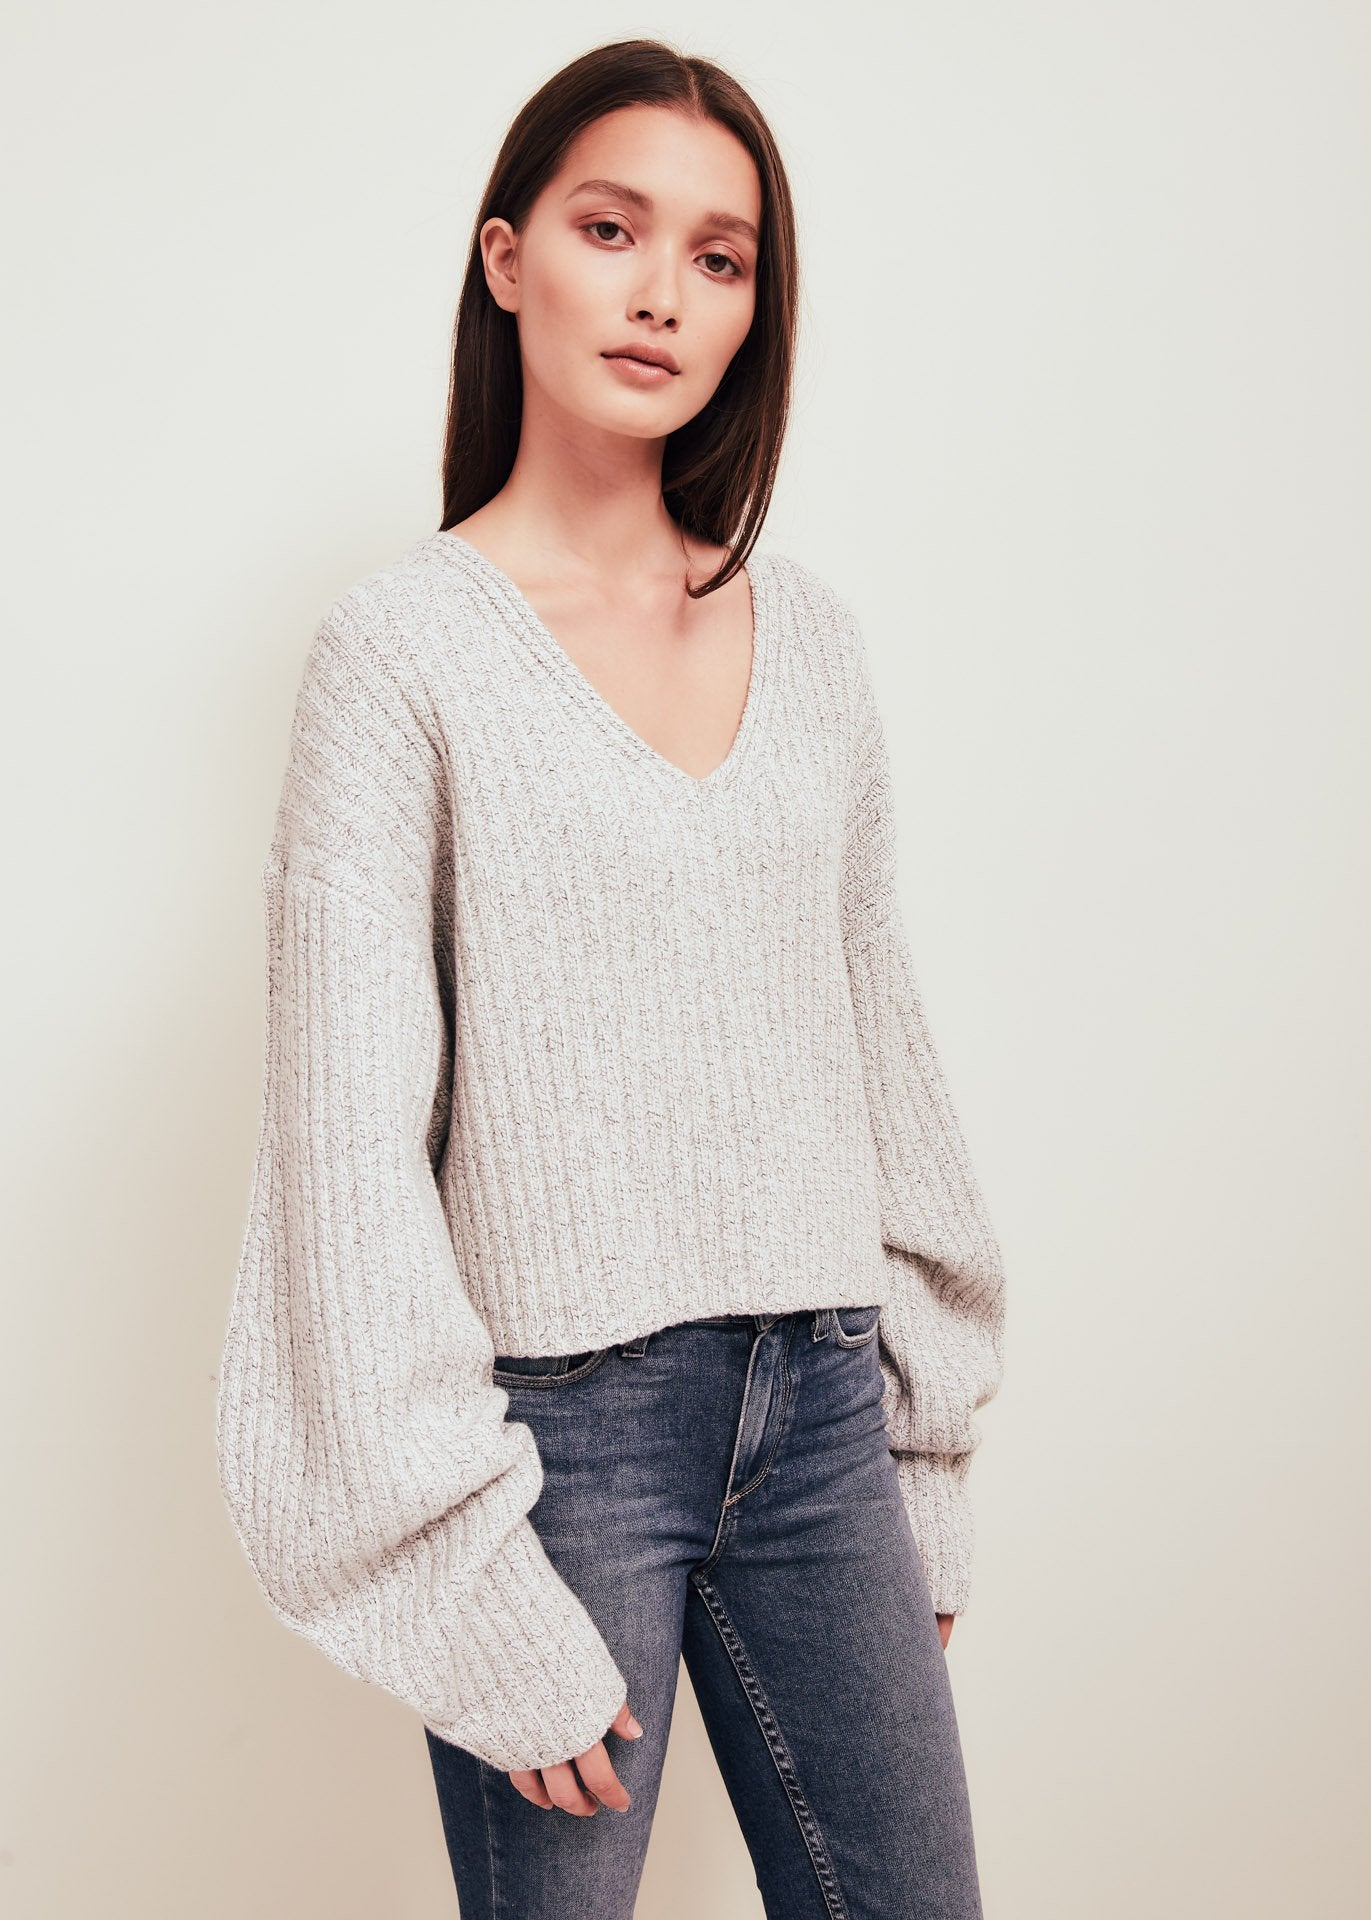 White Wool V Neck Sweater - Elise